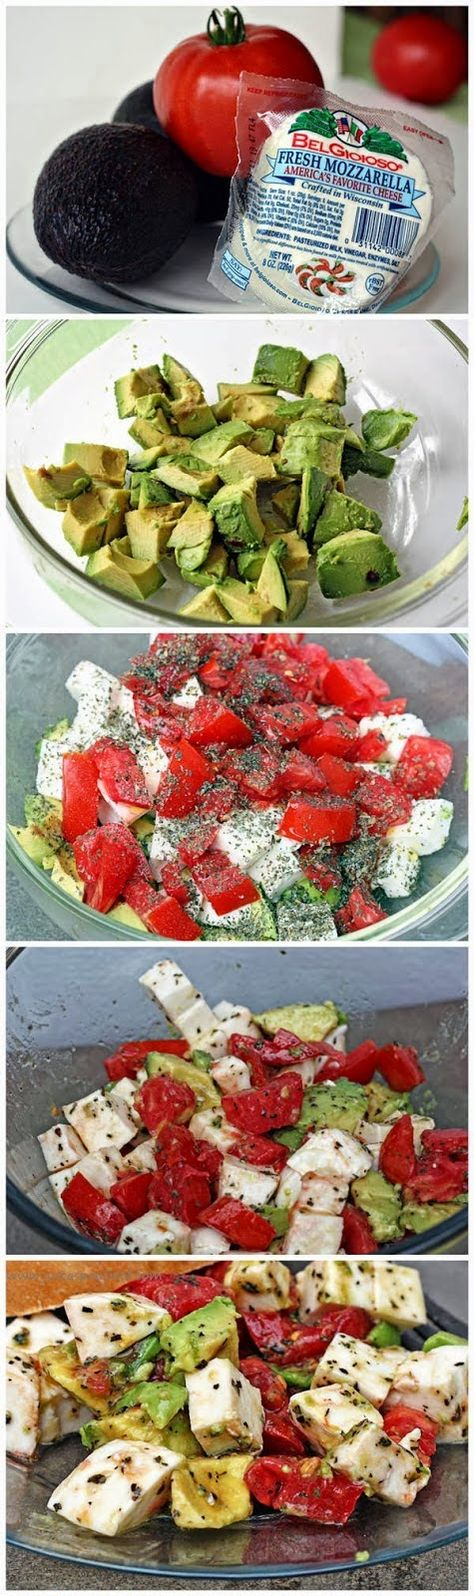 Mozzarella Avocado Tomato Salad #lowcarb super easy and looks delicious! Sharing with Low Carb ♥ @ https://facebook.com/lowcarbzen